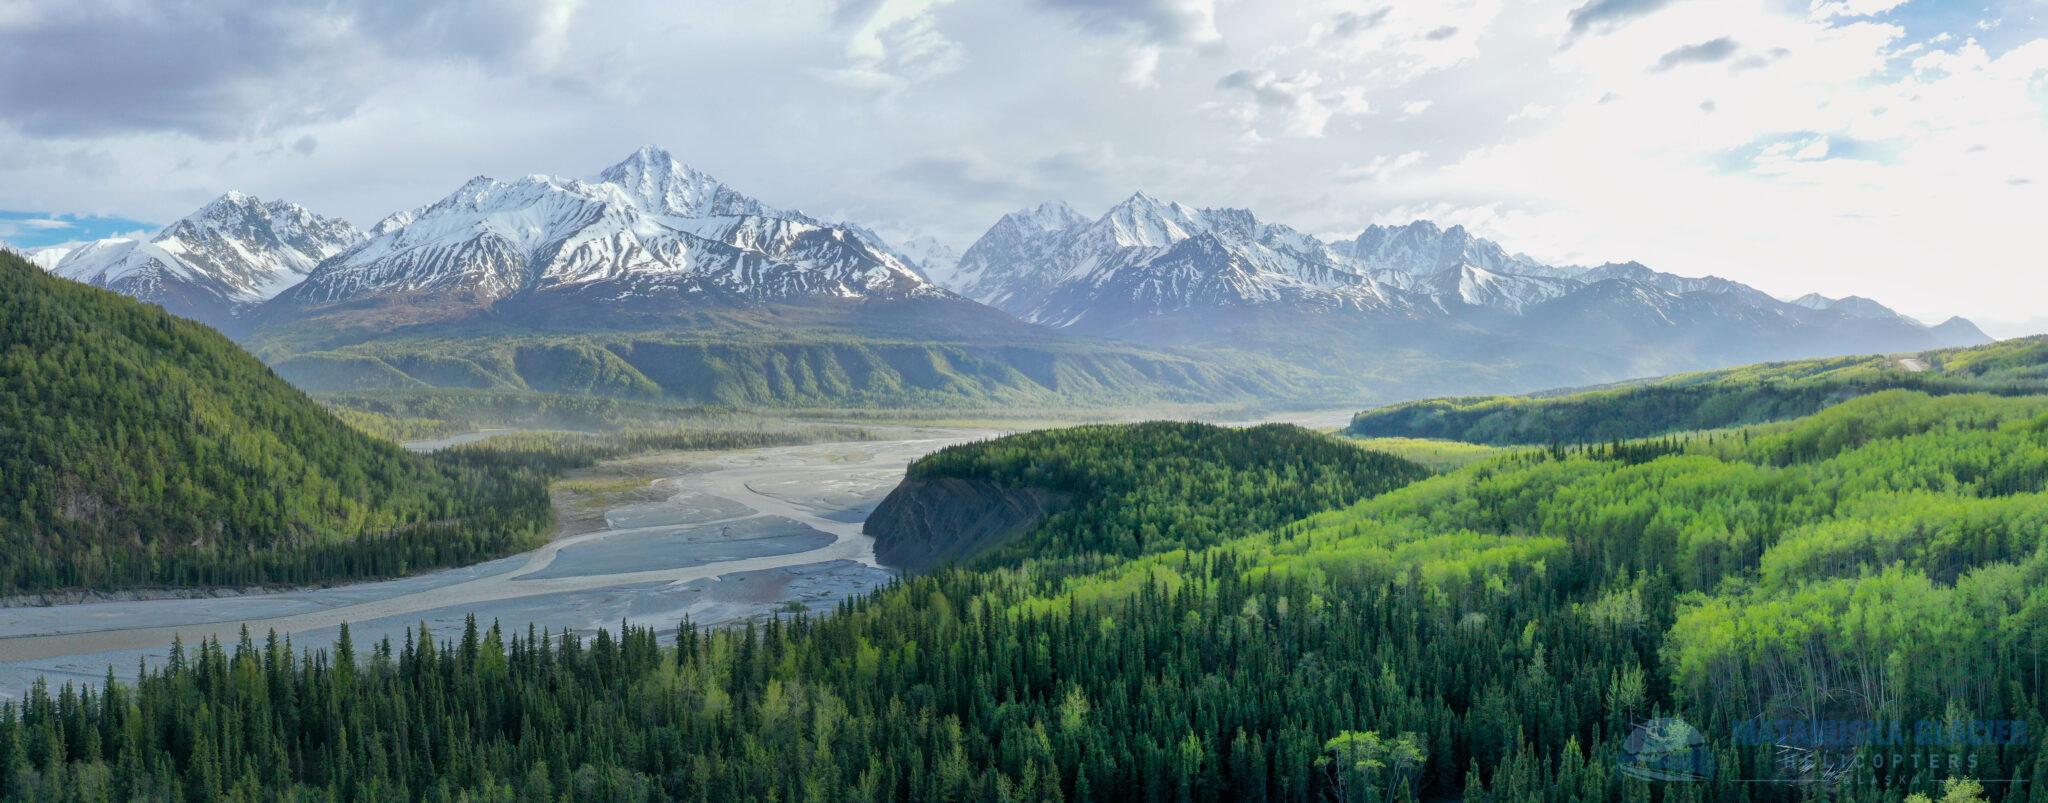 Tips for Experiencing Alaska Without the Crowds